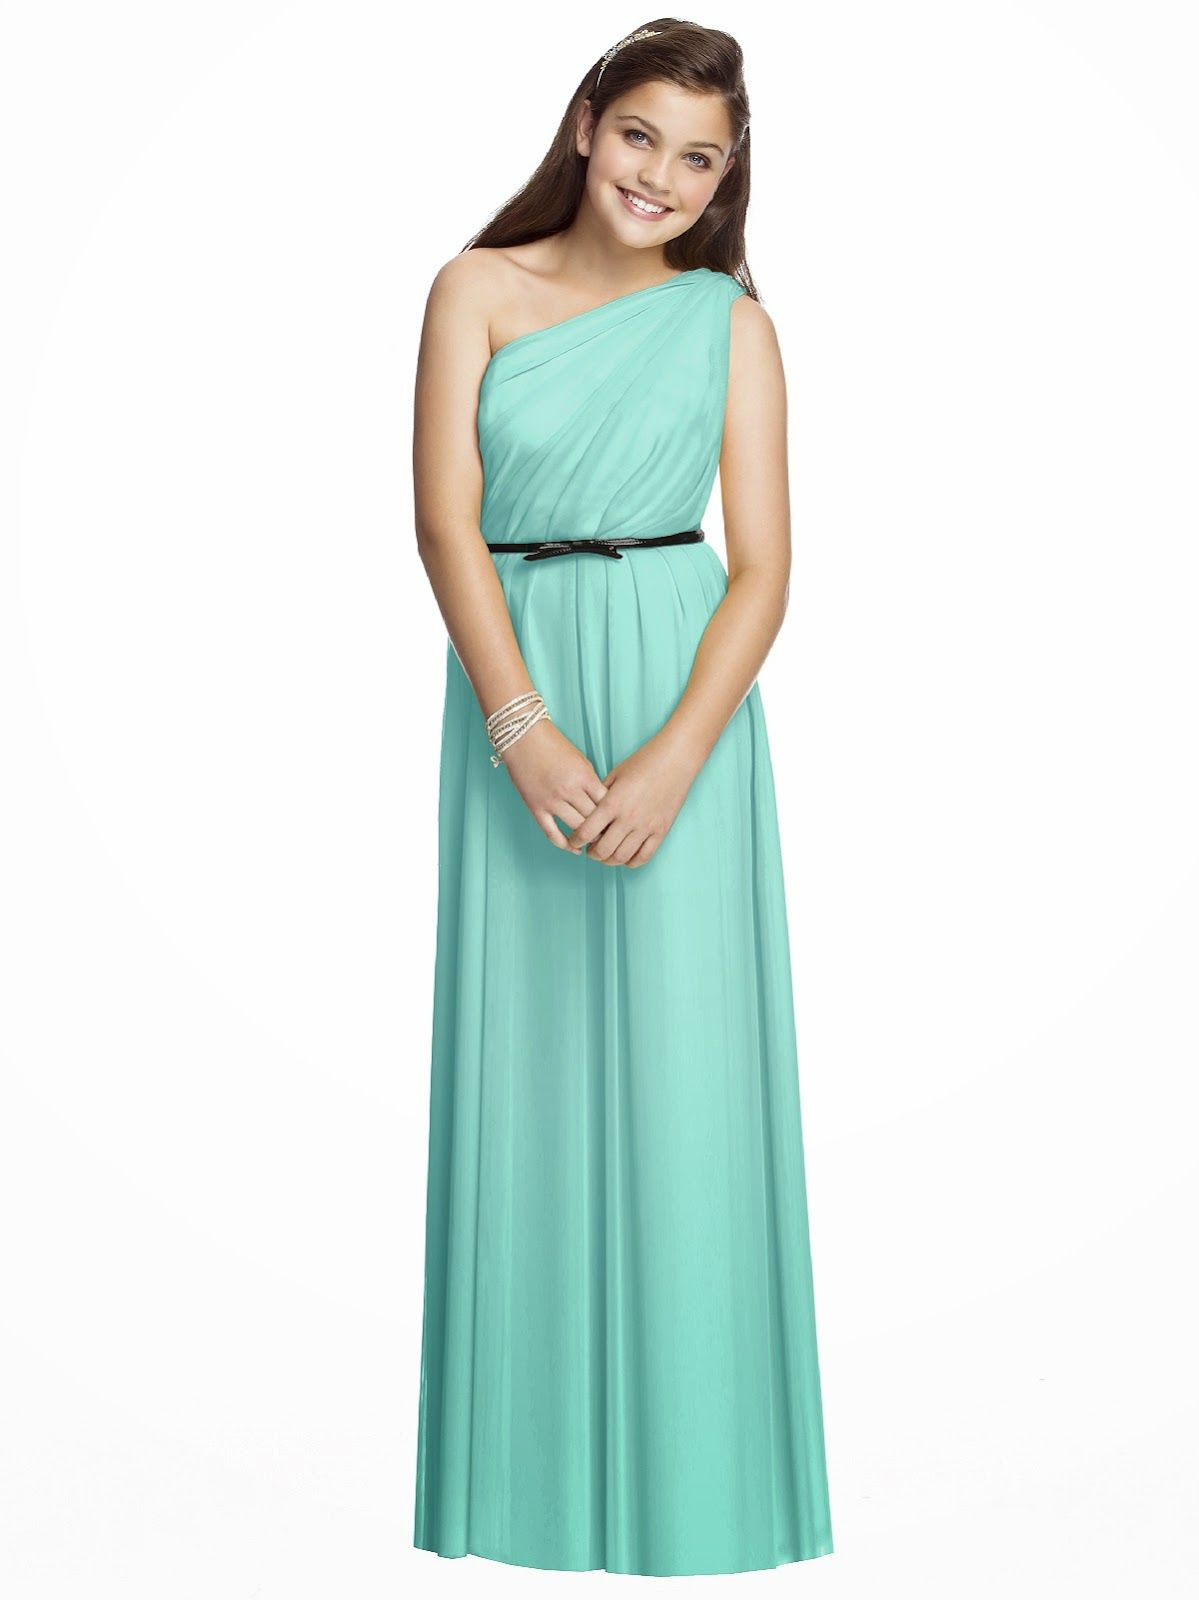 Macy'S Bridesmaid Dresses Juniors